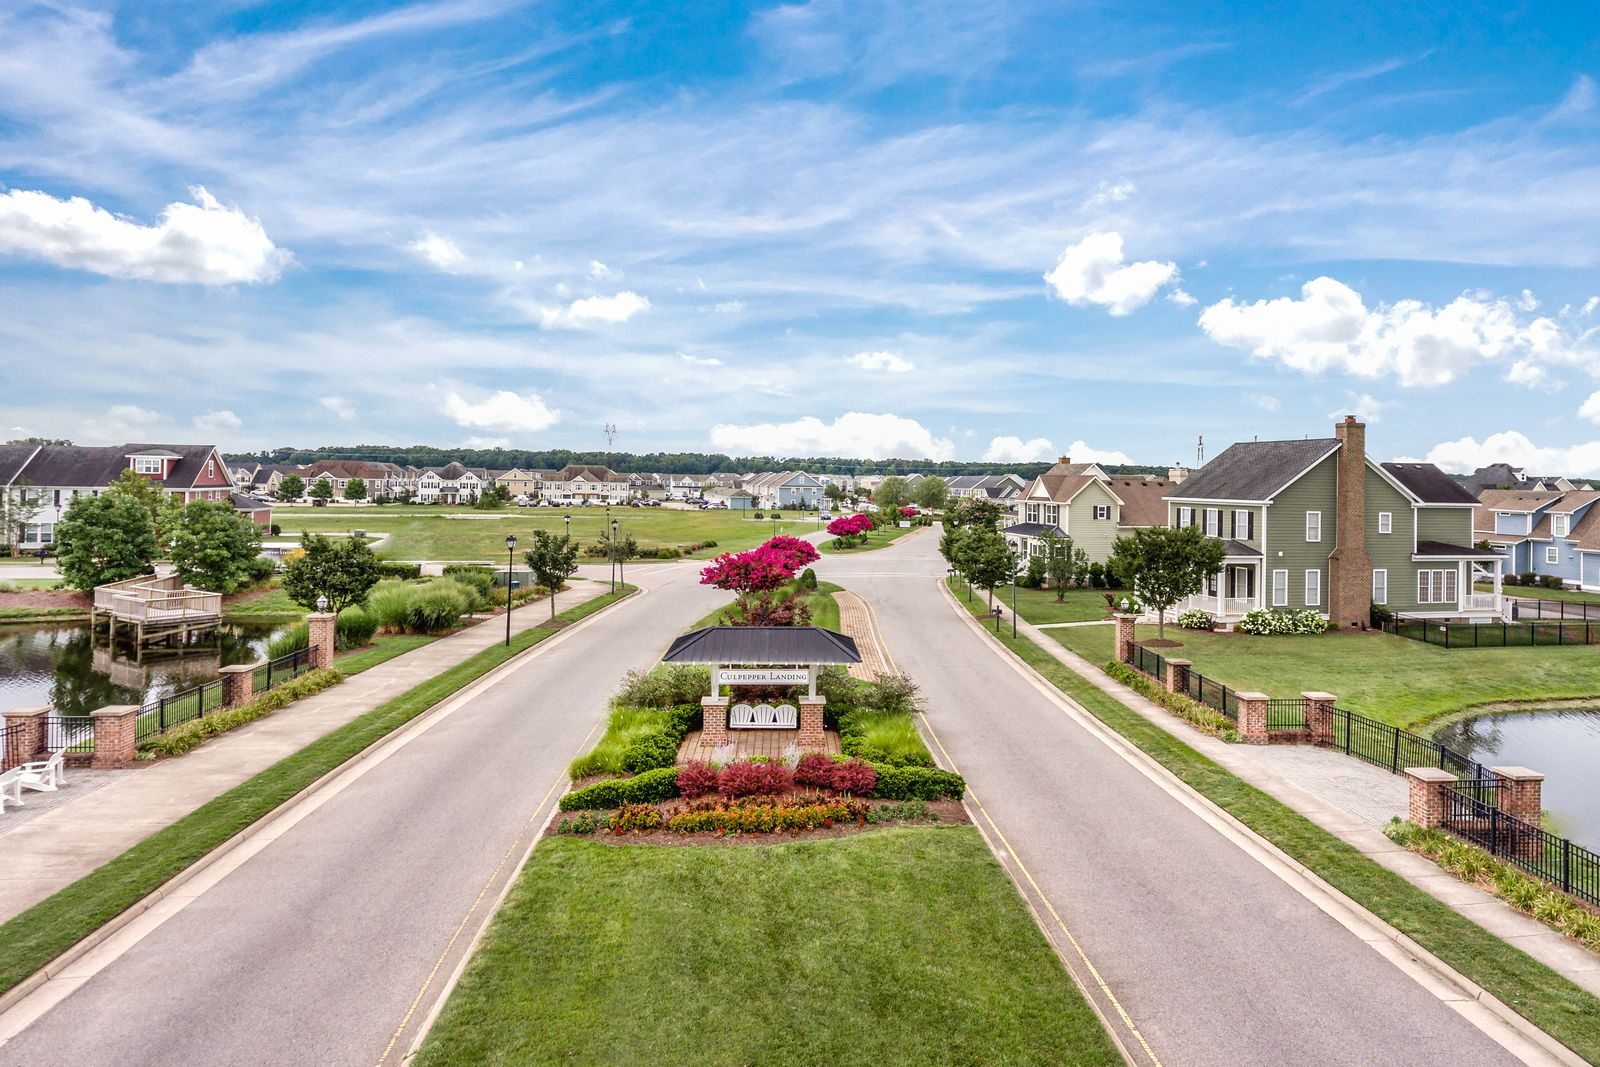 WELCOME TO THE ESTATES AT CULPEPPER LANDING!:Enjoy a quiet lifestyle in an amenity-filled community – including pool, clubhouse, fitness center & more! Now selling in our final section!Schedule your visit!